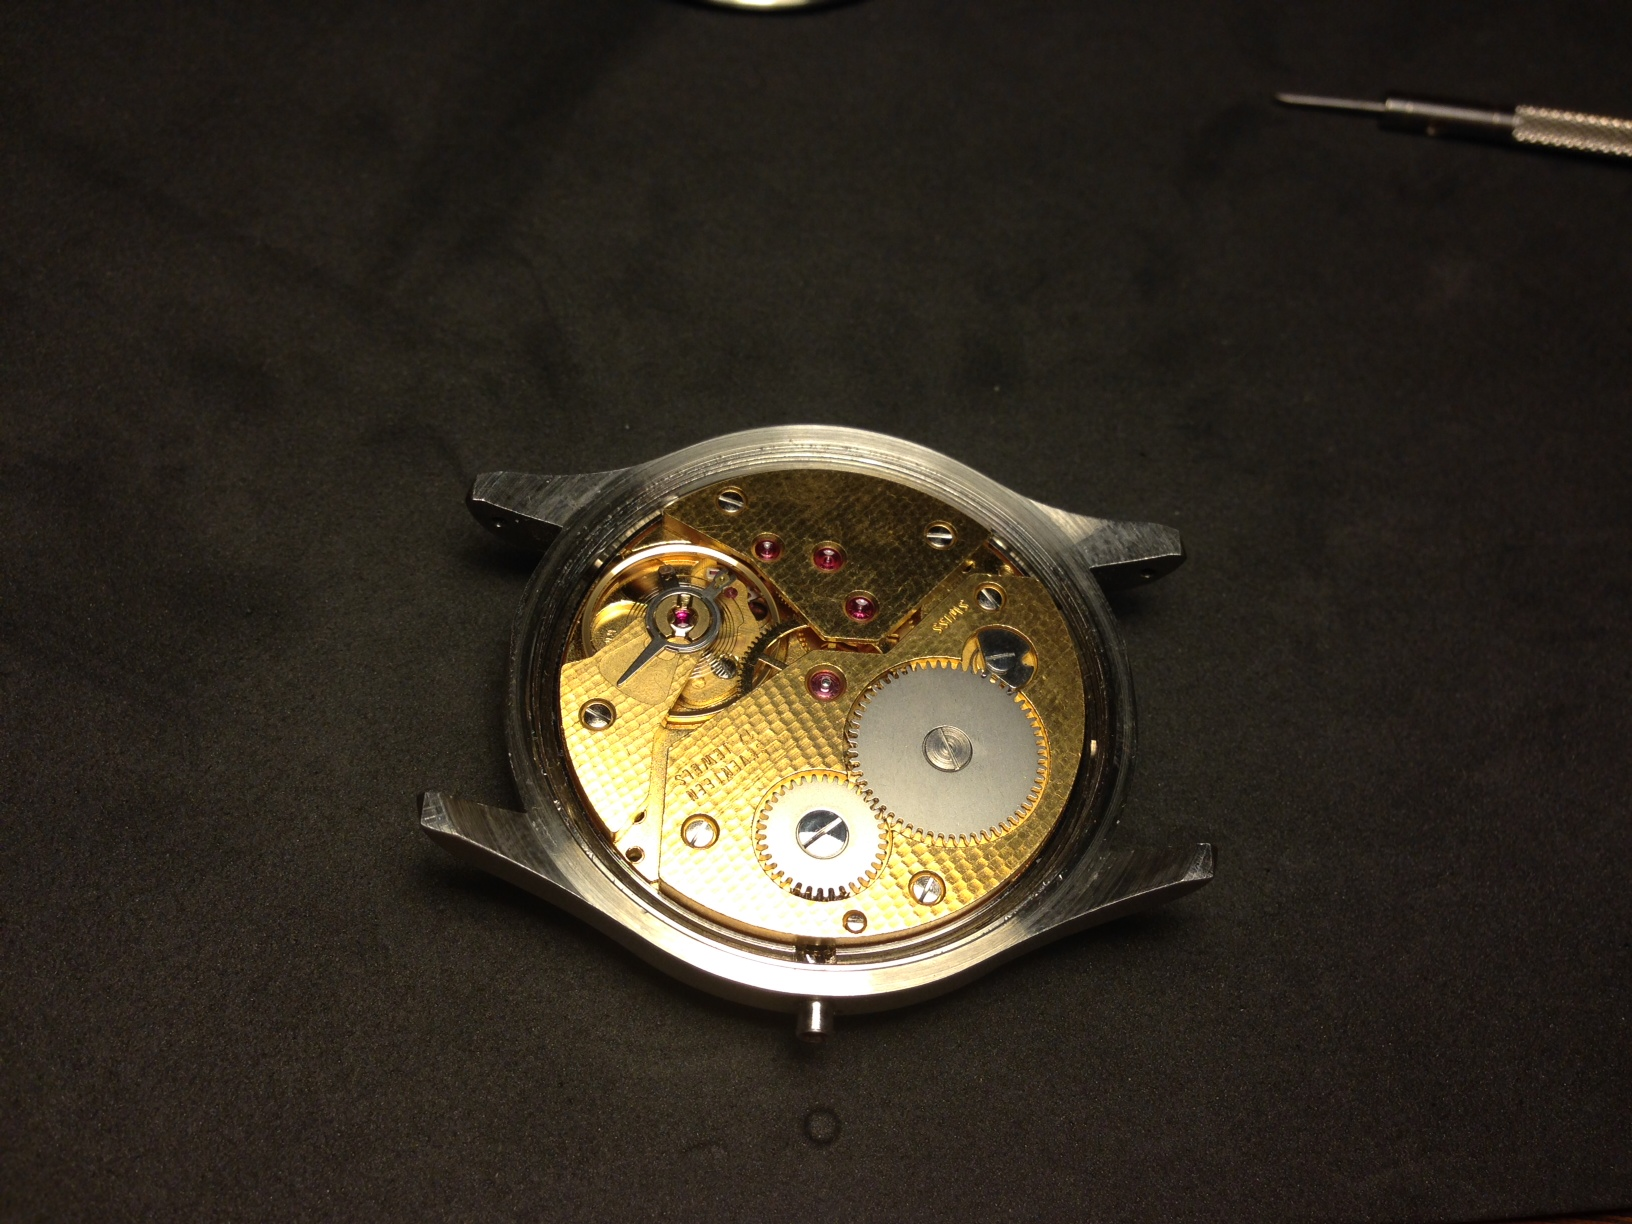 How to build your own mechanical watch - Install the movement